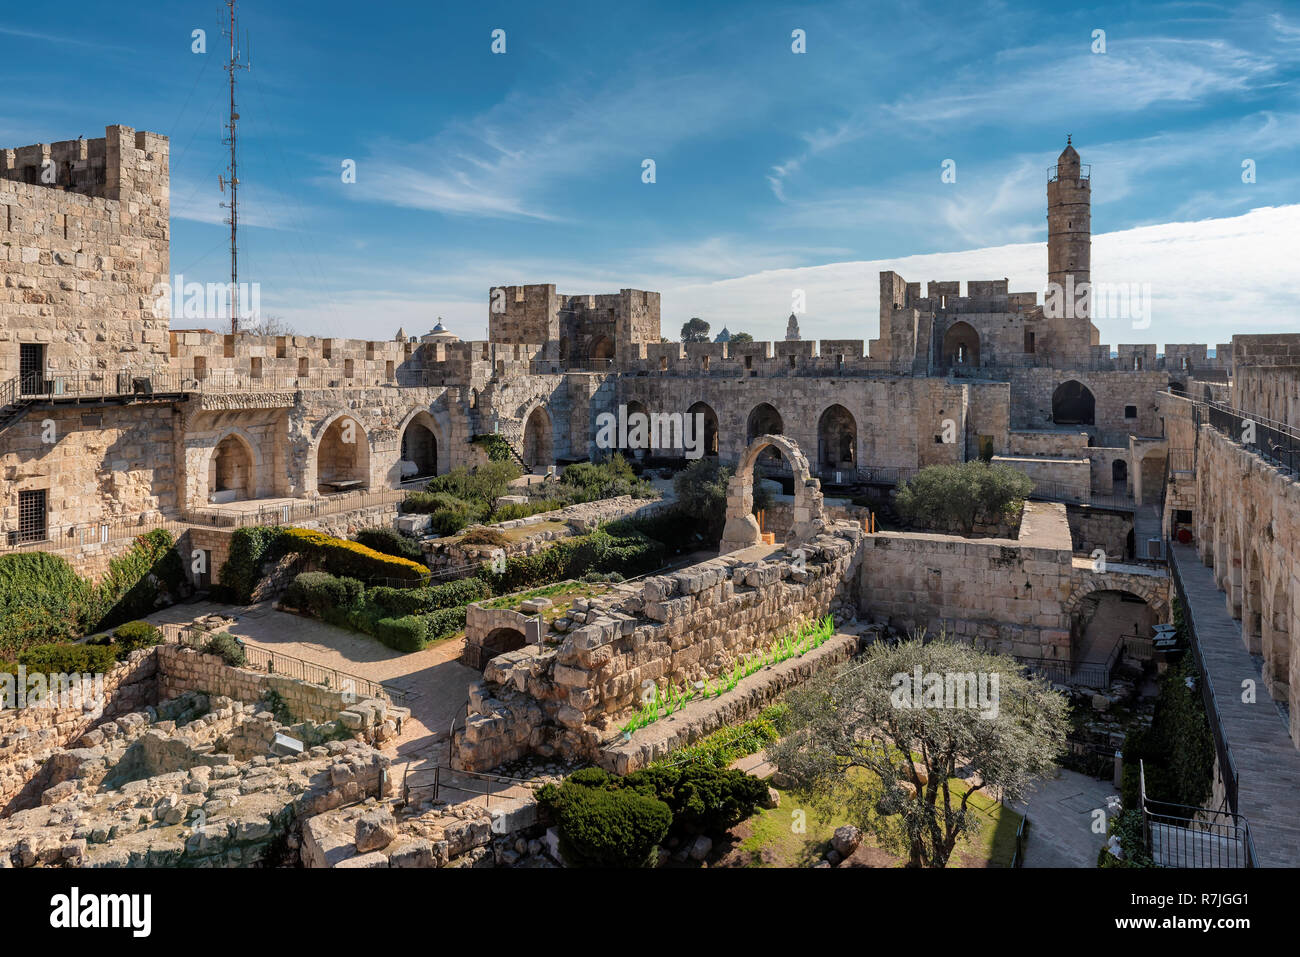 David's tower in old city of Jerusalem, Israel. - Stock Image